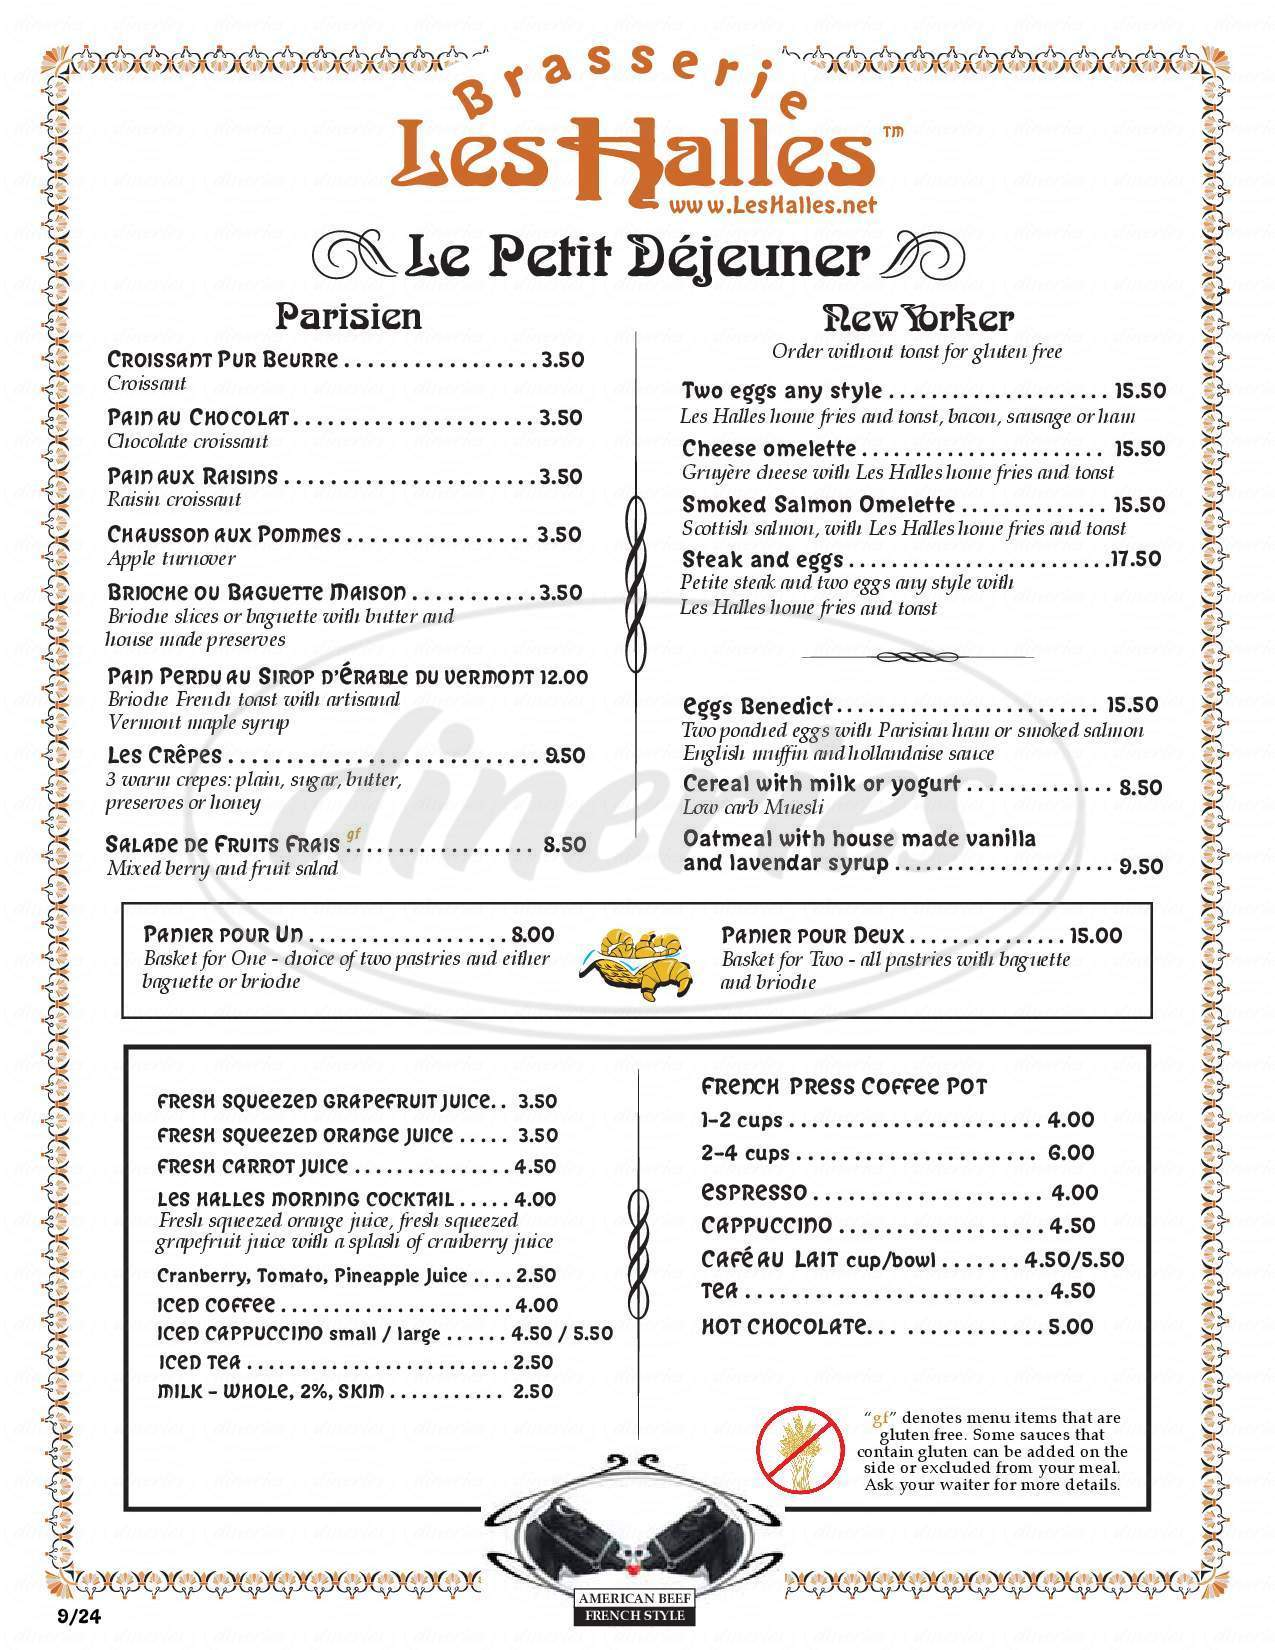 menu for Les Halles